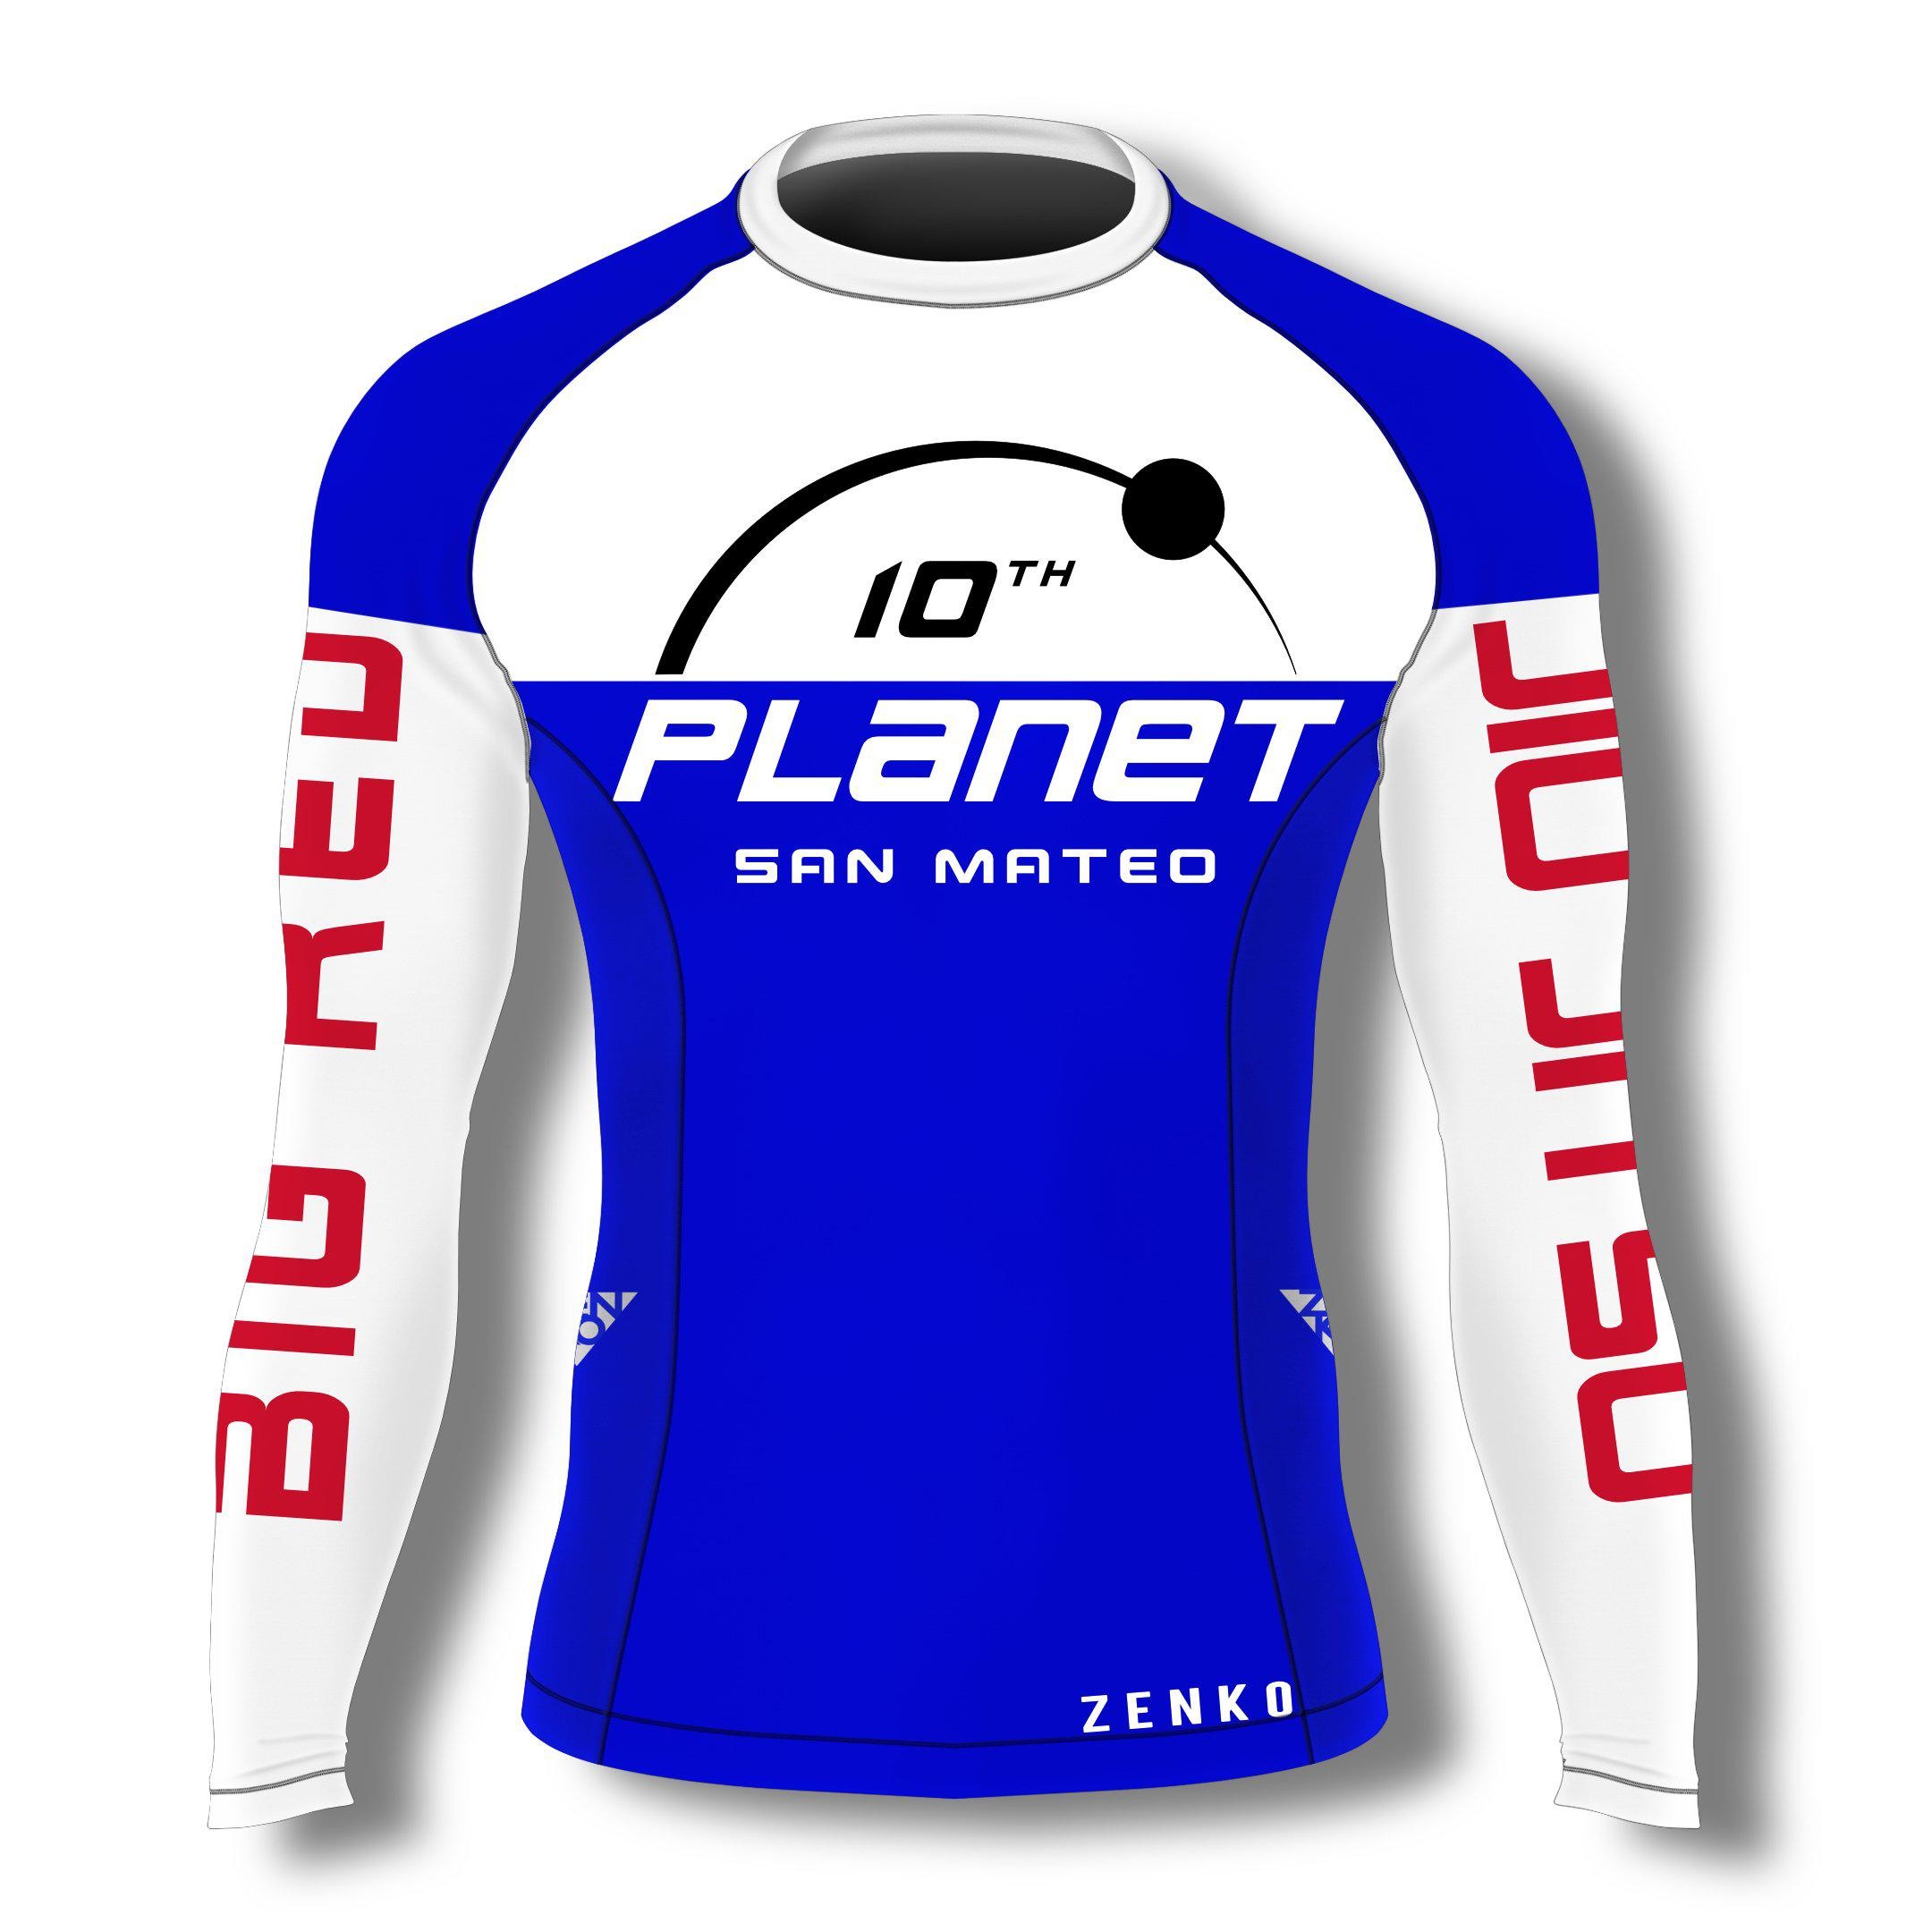 10th Planet San Mateo Rashguard - Blue - Zenko Fightwear